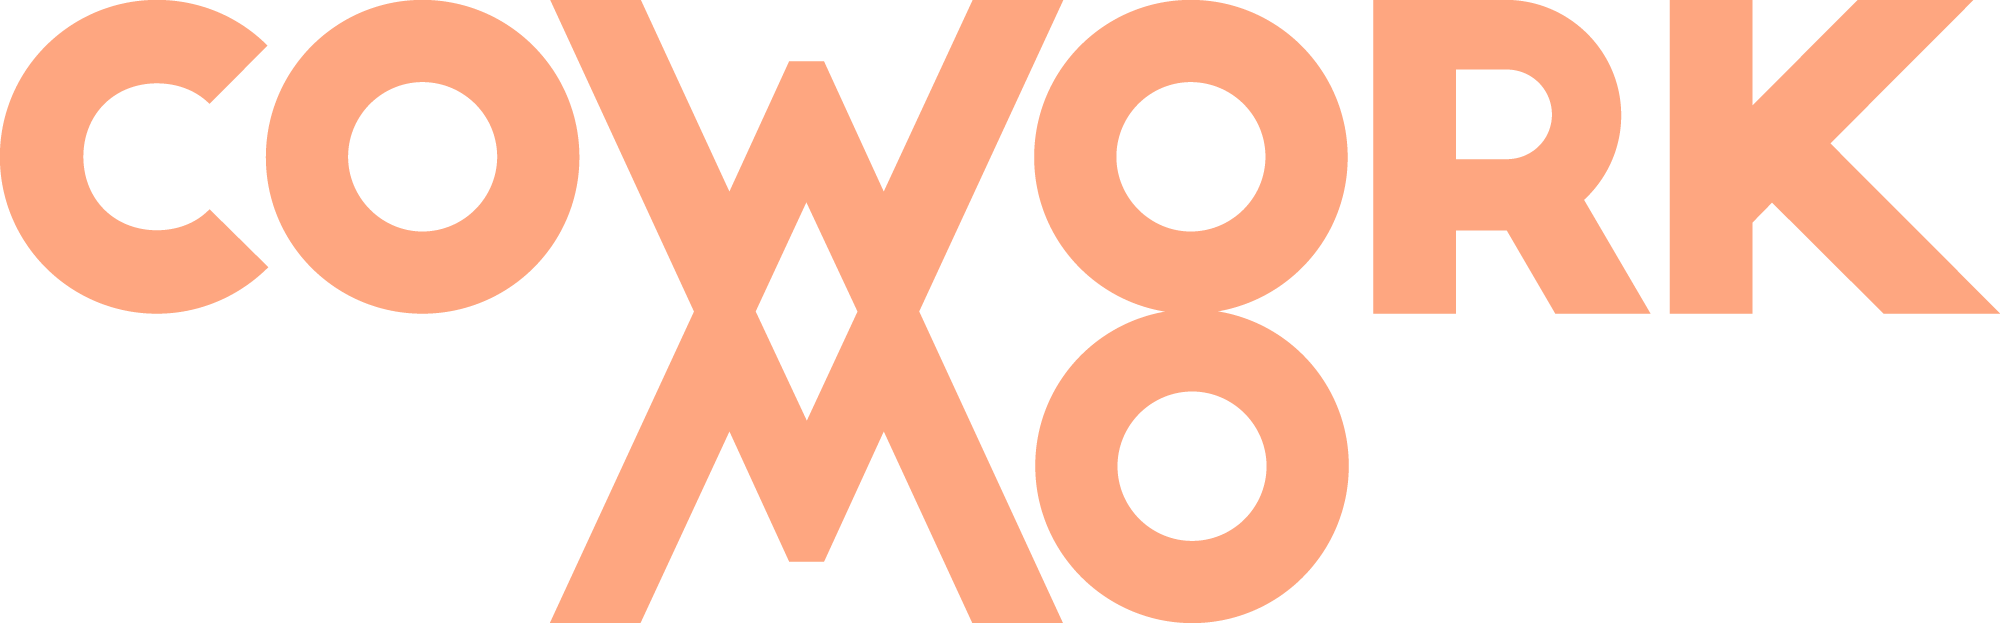 New coworking platform COWORKMO launches with a focus on employee wellbeing and reducing workplace isolation